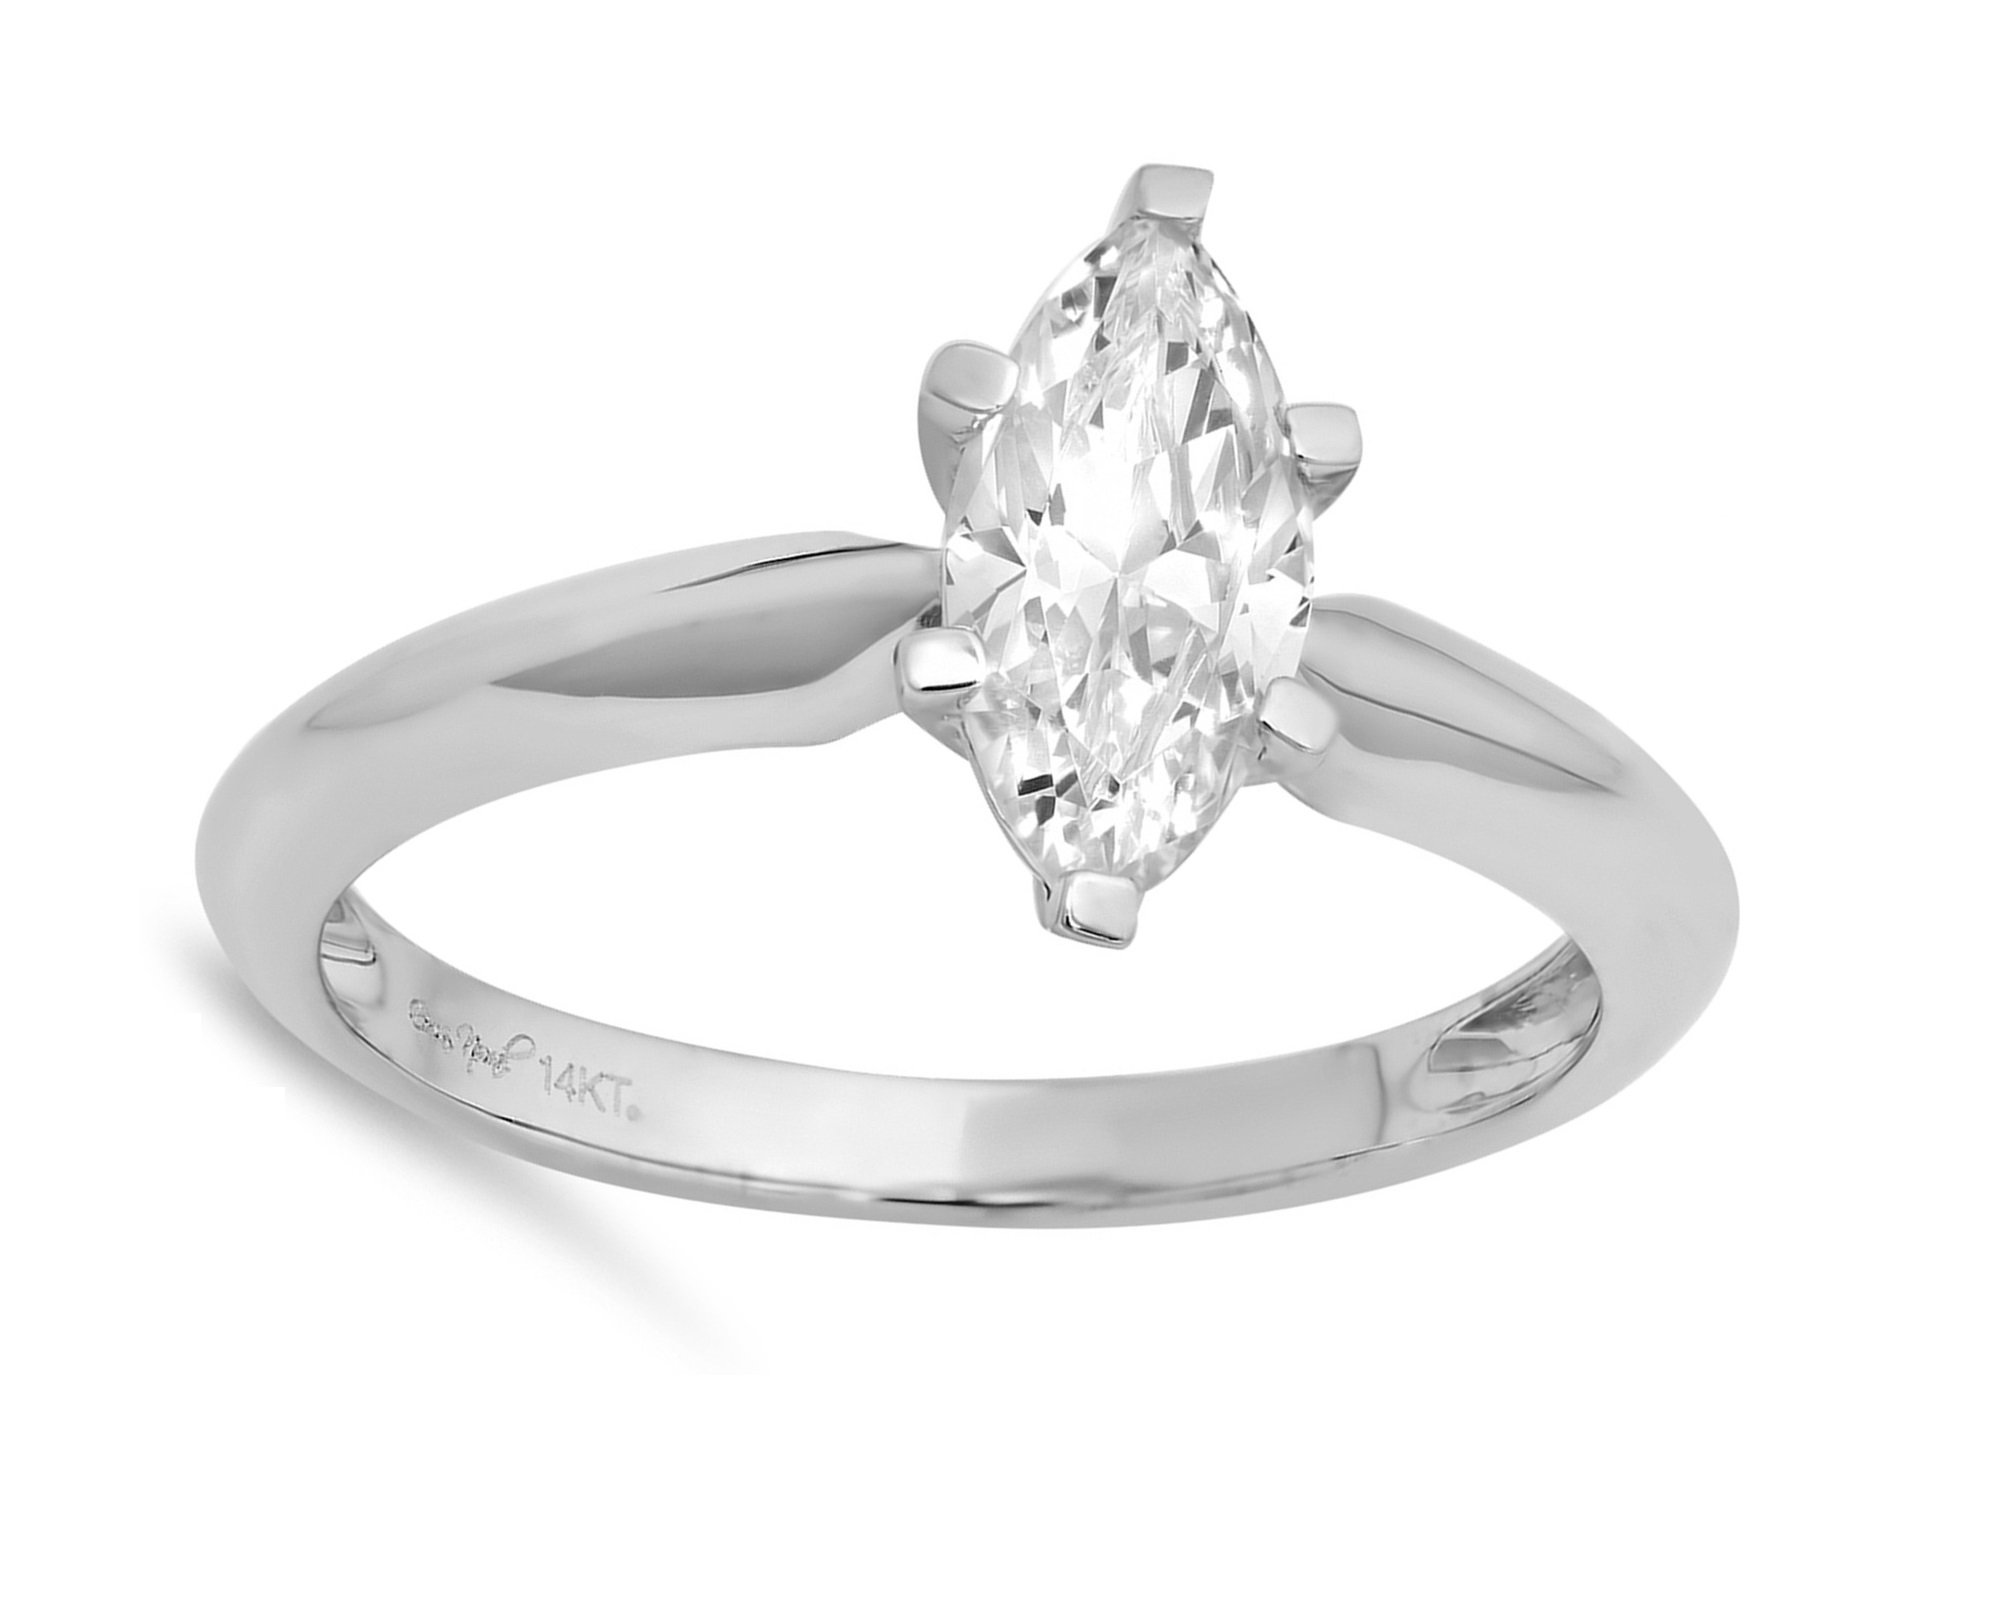 0.95ct Brilliant Marquise Cut Solitaire Highest Quality Moissanite Ideal D 6-Prong Statement Ring in Solid Real 14k White Gold for Women